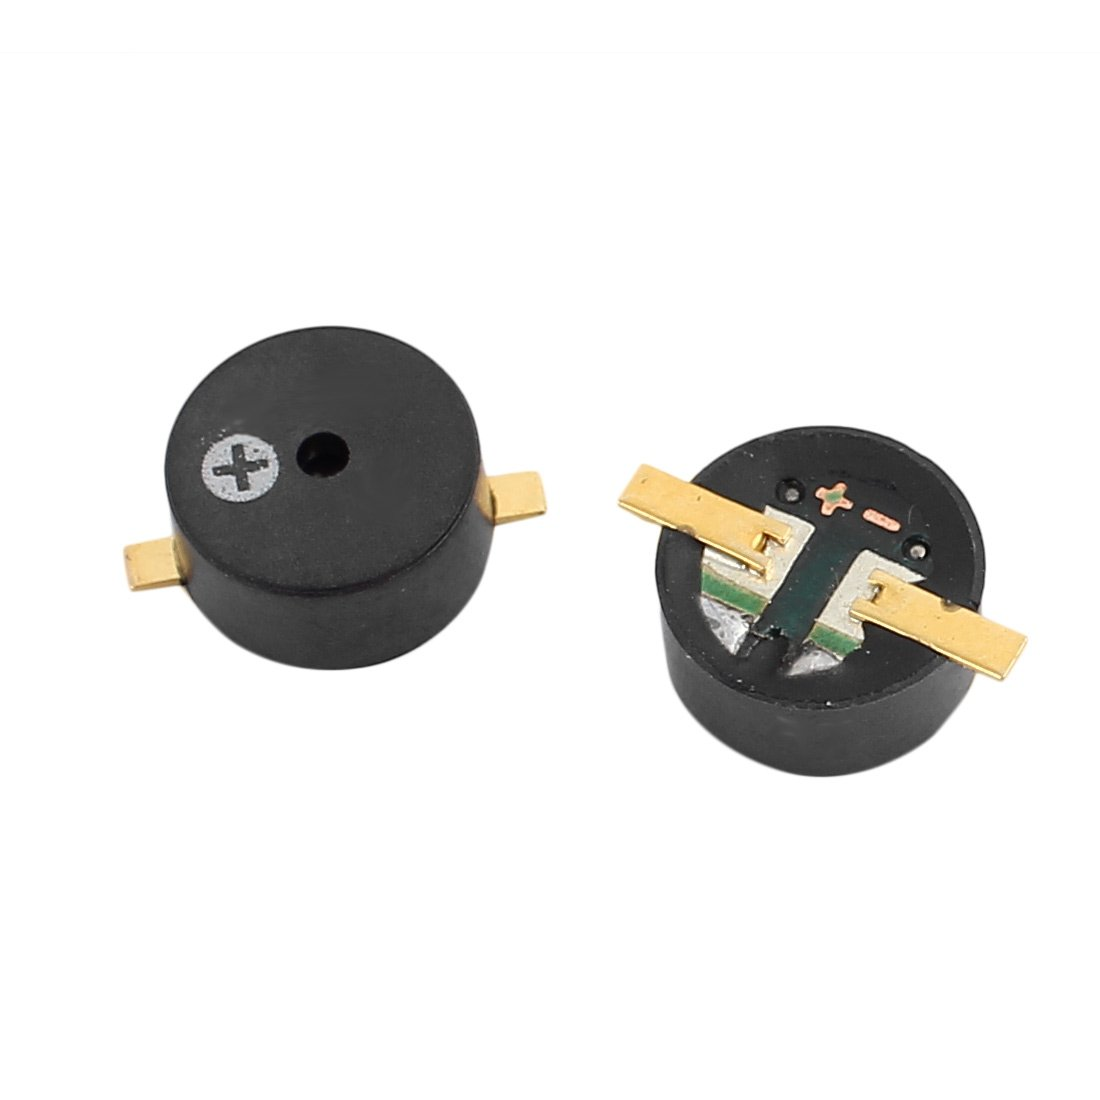 Aexit 2Pcs DC Security & Surveillance 4-6V 9mm x 4mm SMD Electromagnetic Passive Horns & Sirens Buzzer Black